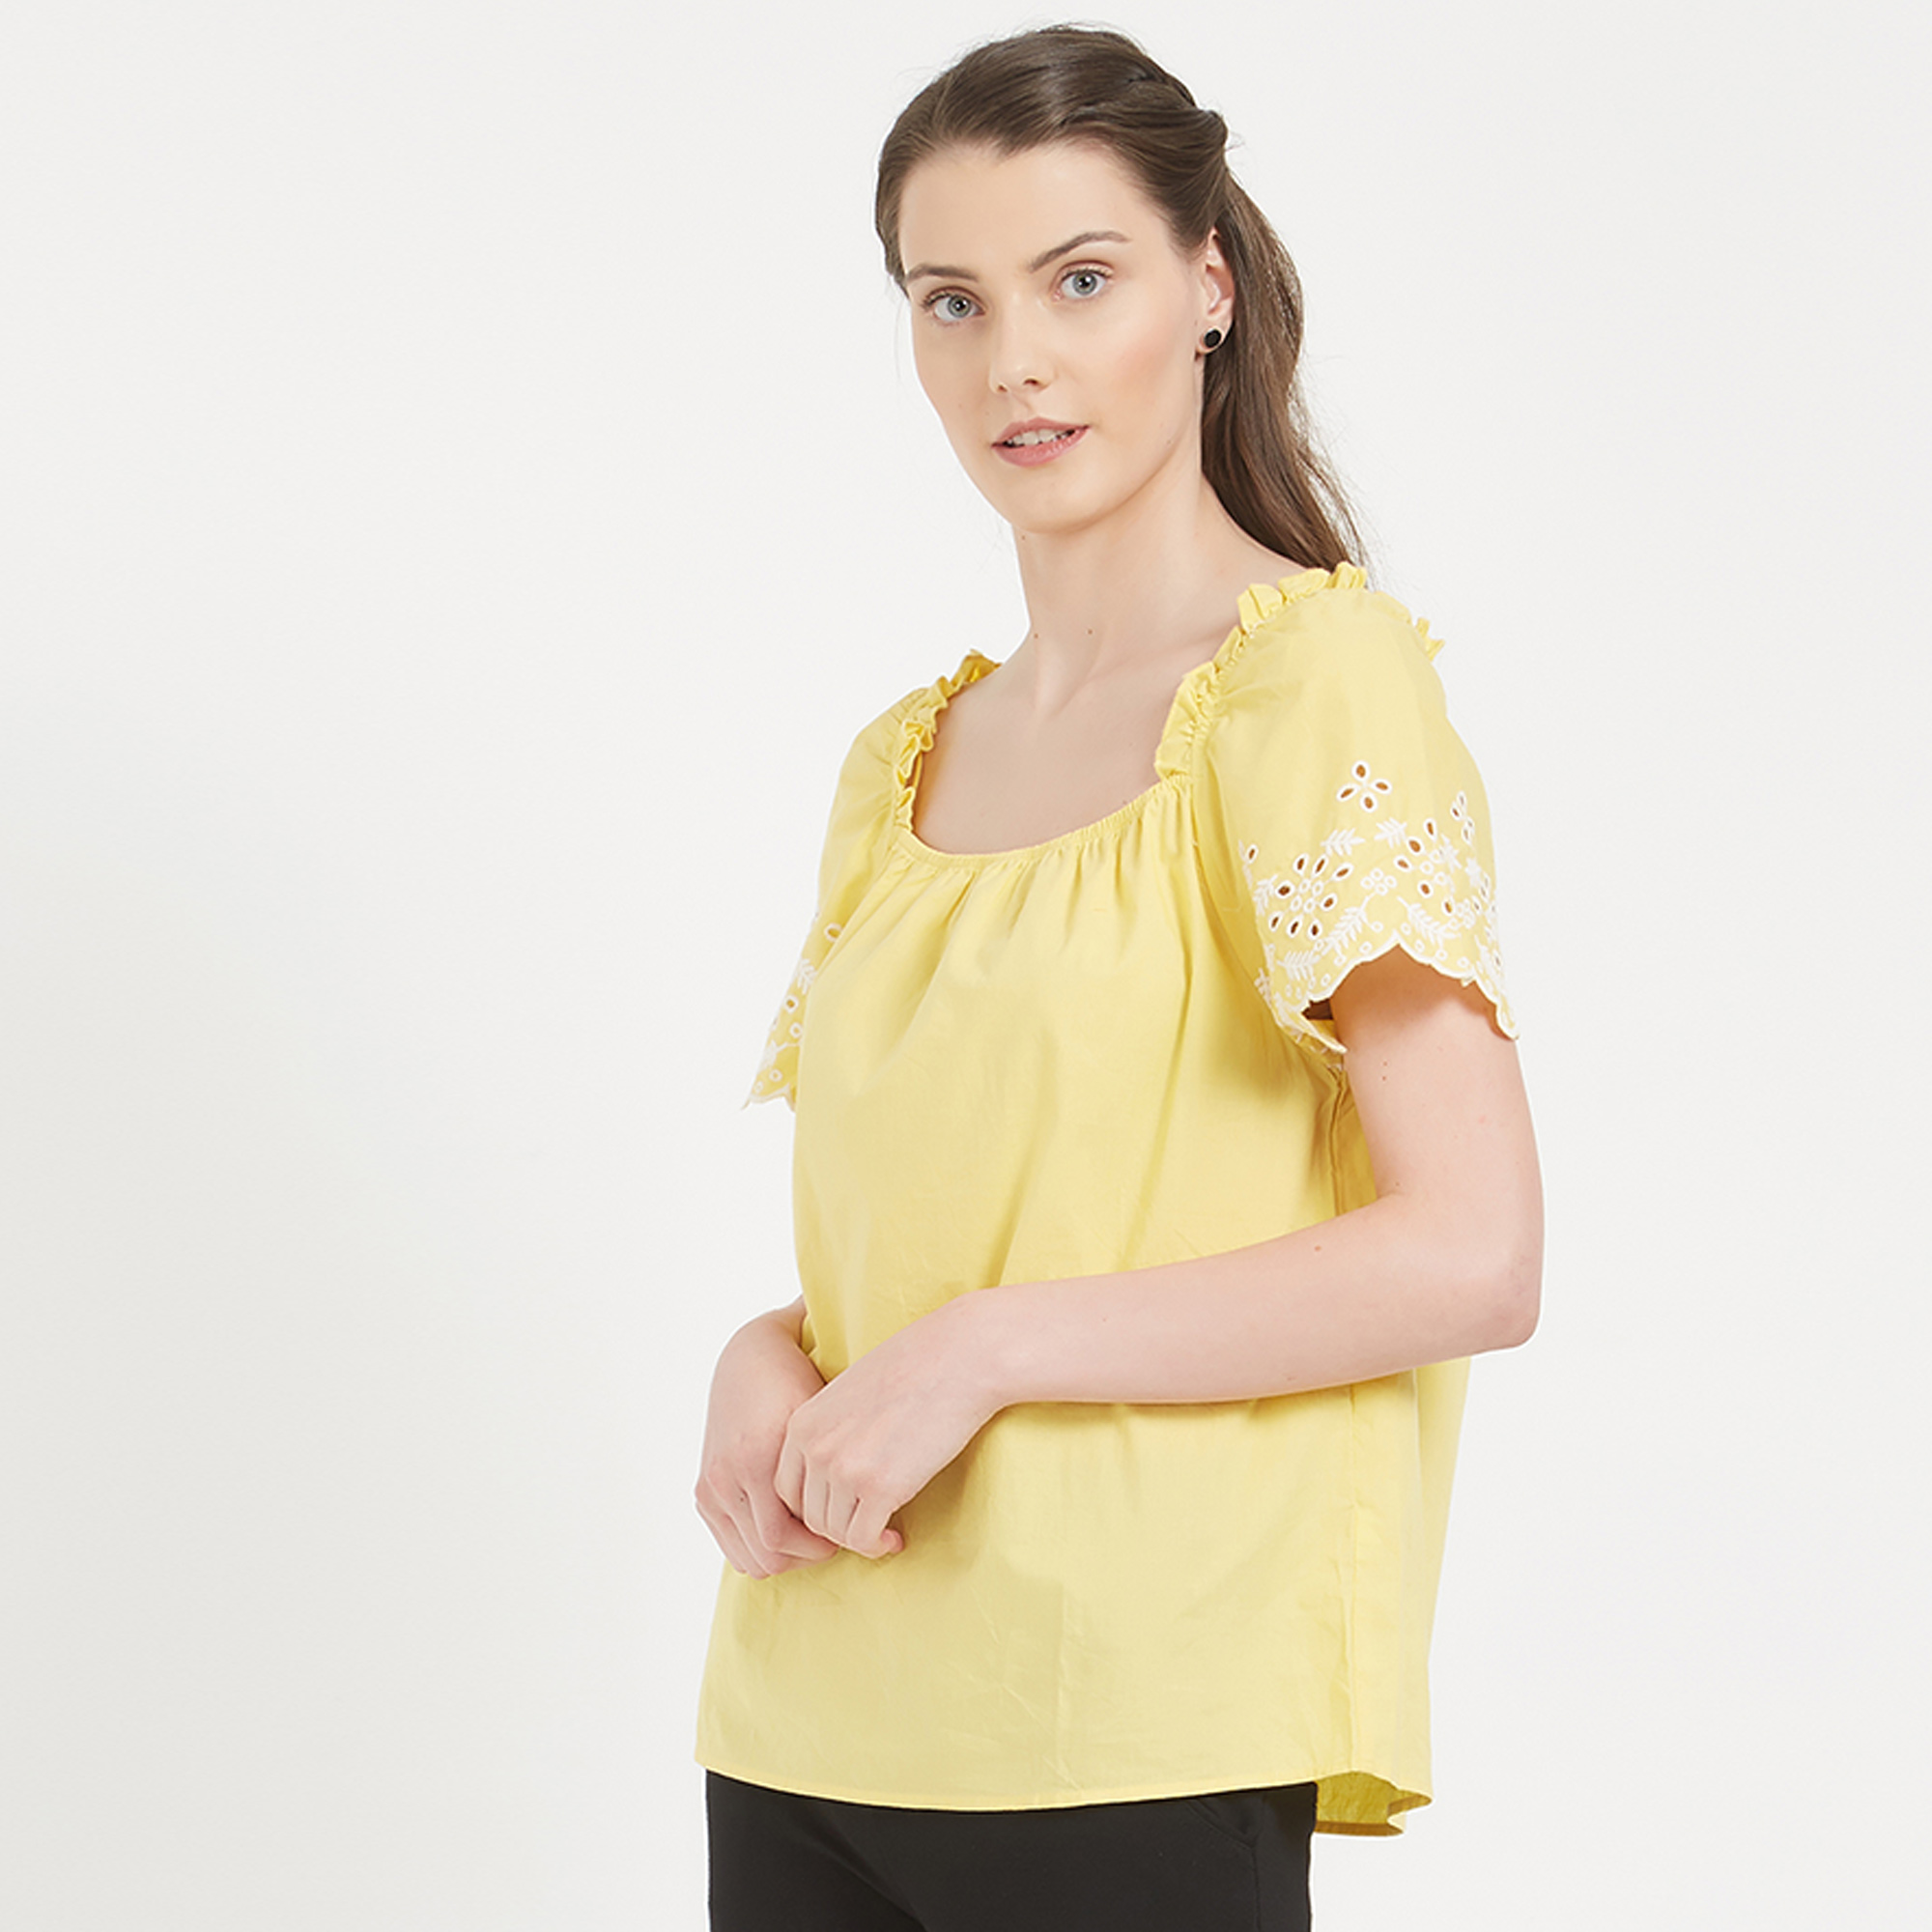 Bright Yellow Colored Party Wear Western CottonTop